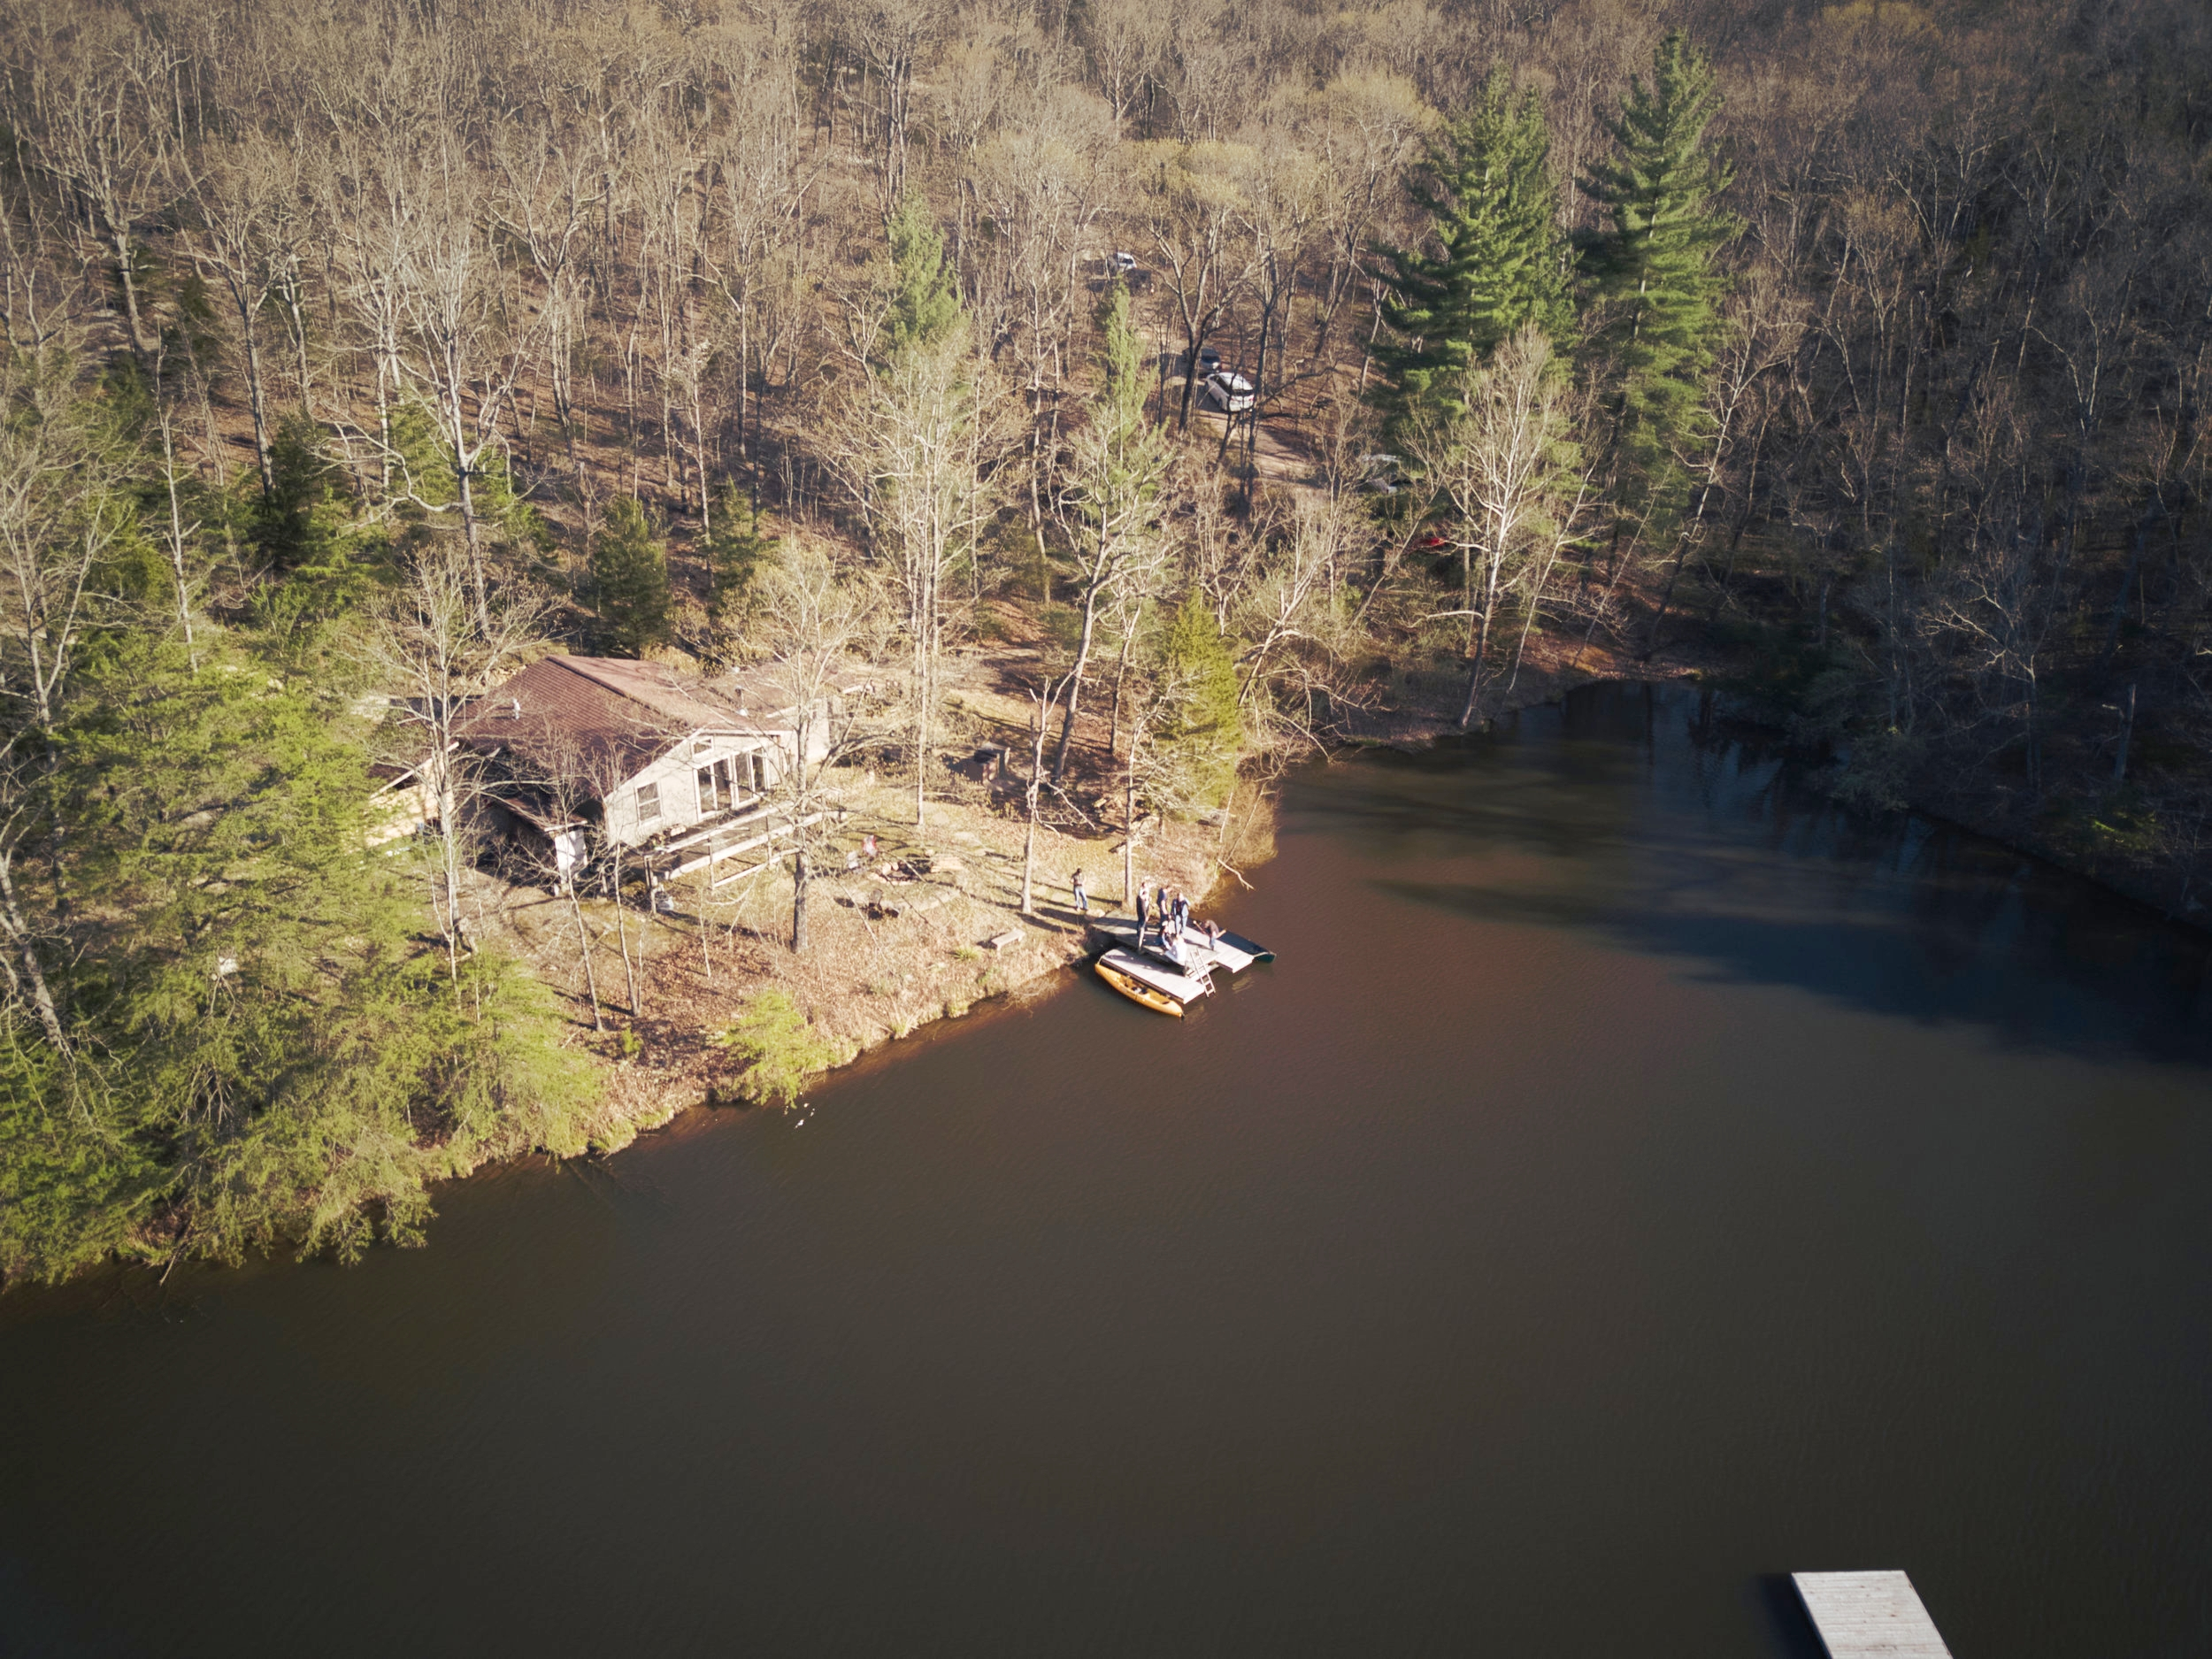 JEMA's retreat location is a page out of Thoreau's Walden Pond -